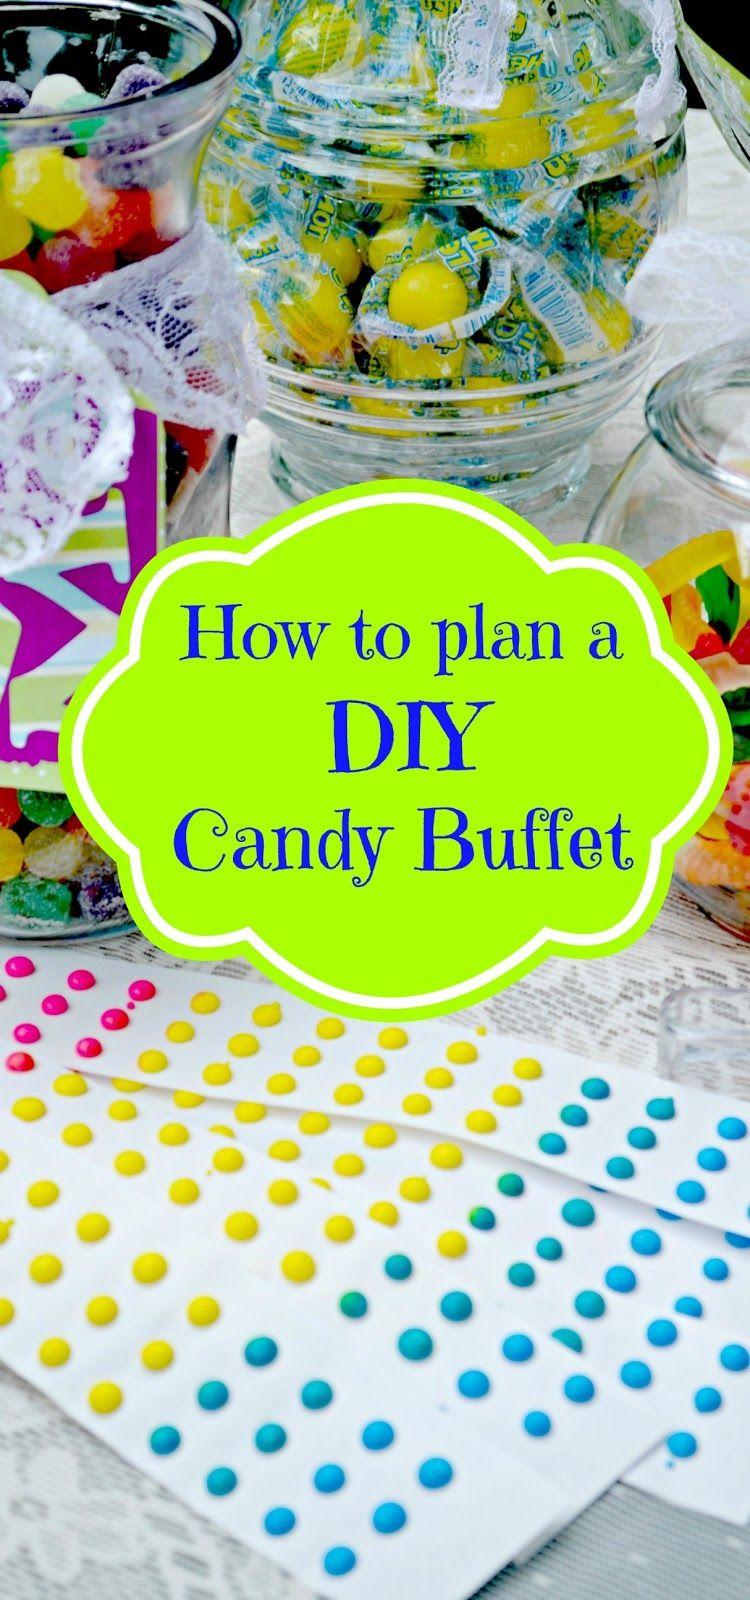 How To Plan A Diy Candy Buffet For Your Party The Domestic Geek